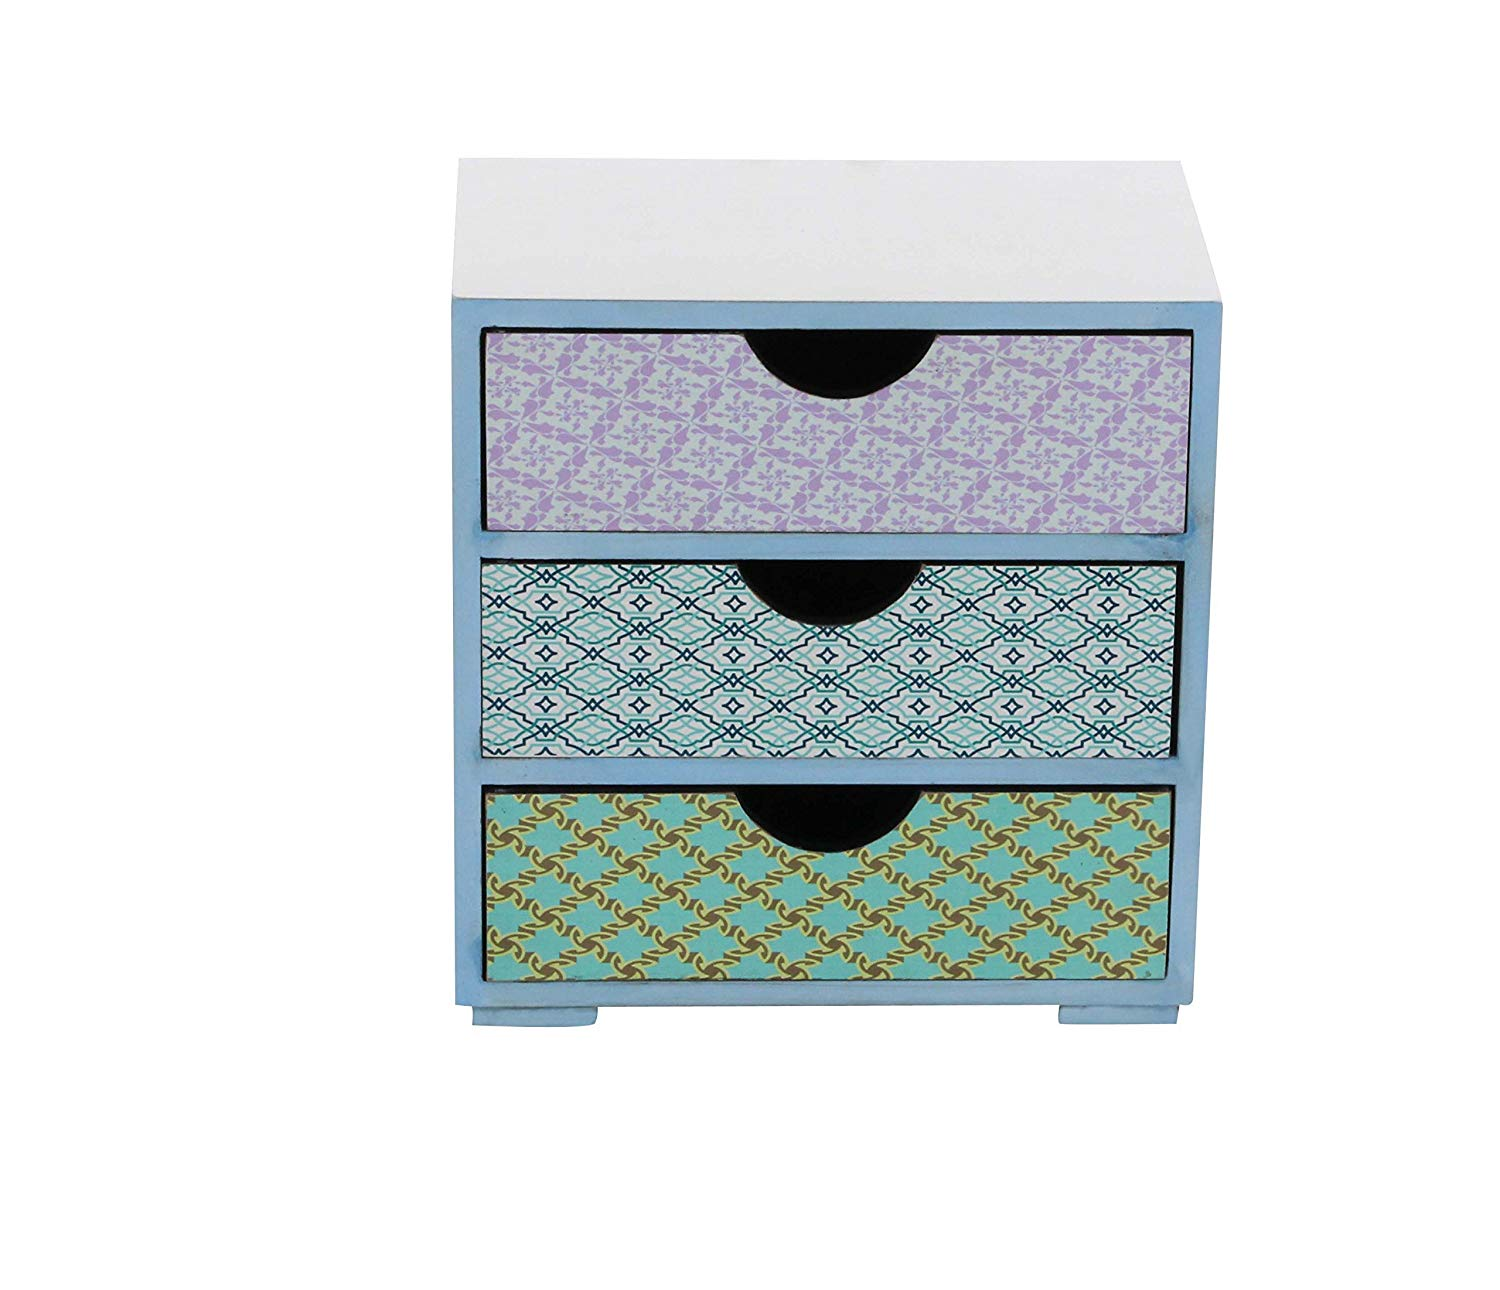 Deco 79 56706 Square Wooden Three Drawer Jewelry Chest, White/Blue/Purple/Cyan/Yellow/Brown